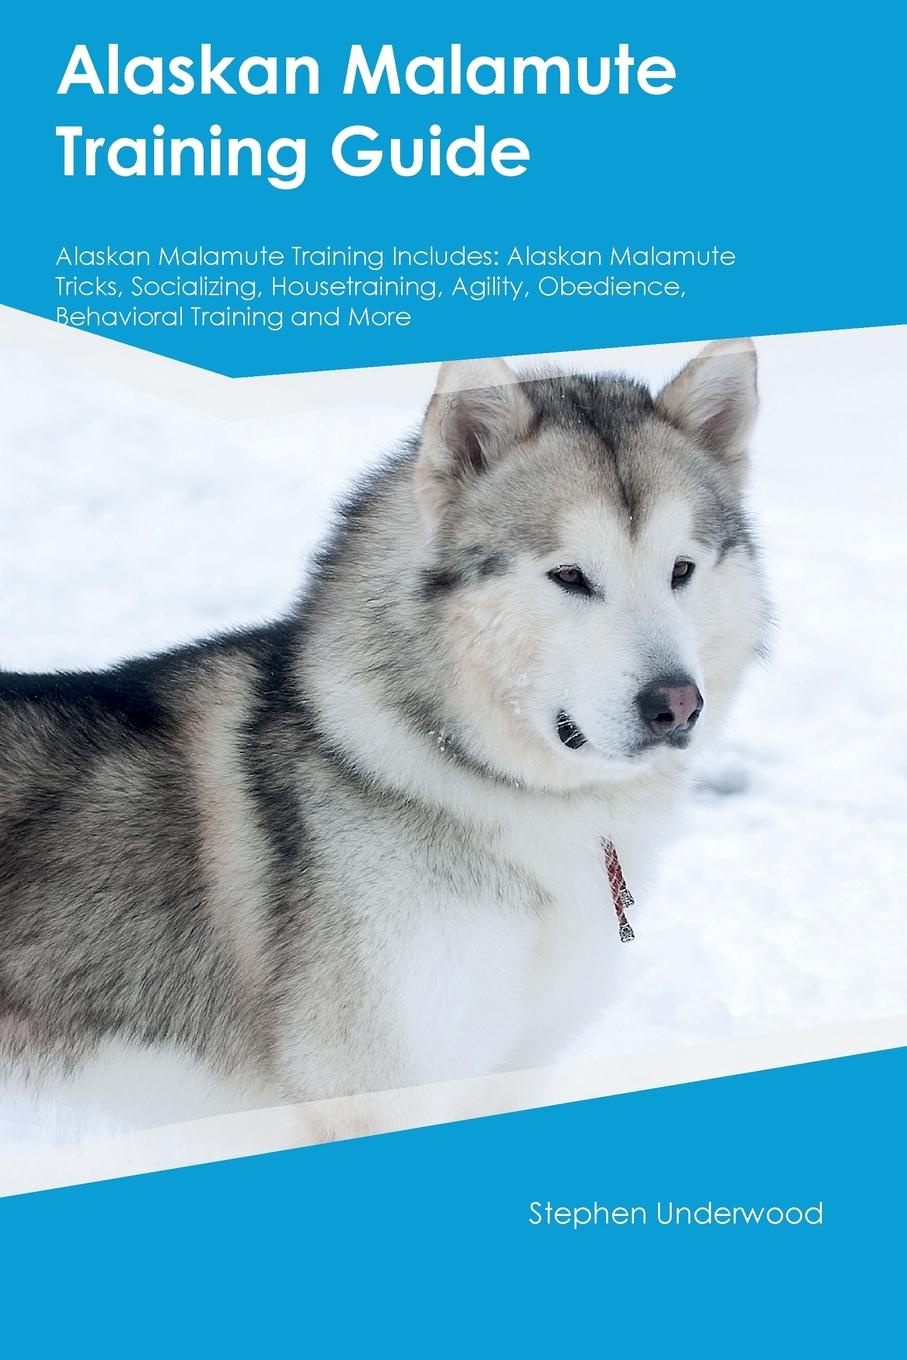 Stephen Underwood Alaskan Malamute Training Guide Alaskan Malamute Training Includes. Alaskan Malamute Tricks, Socializing, Housetraining, Agility, Obedience, Behavioral Training and More виброхвосты lucky john tioga цвет желтый красный черный длина 51 мм 10 шт